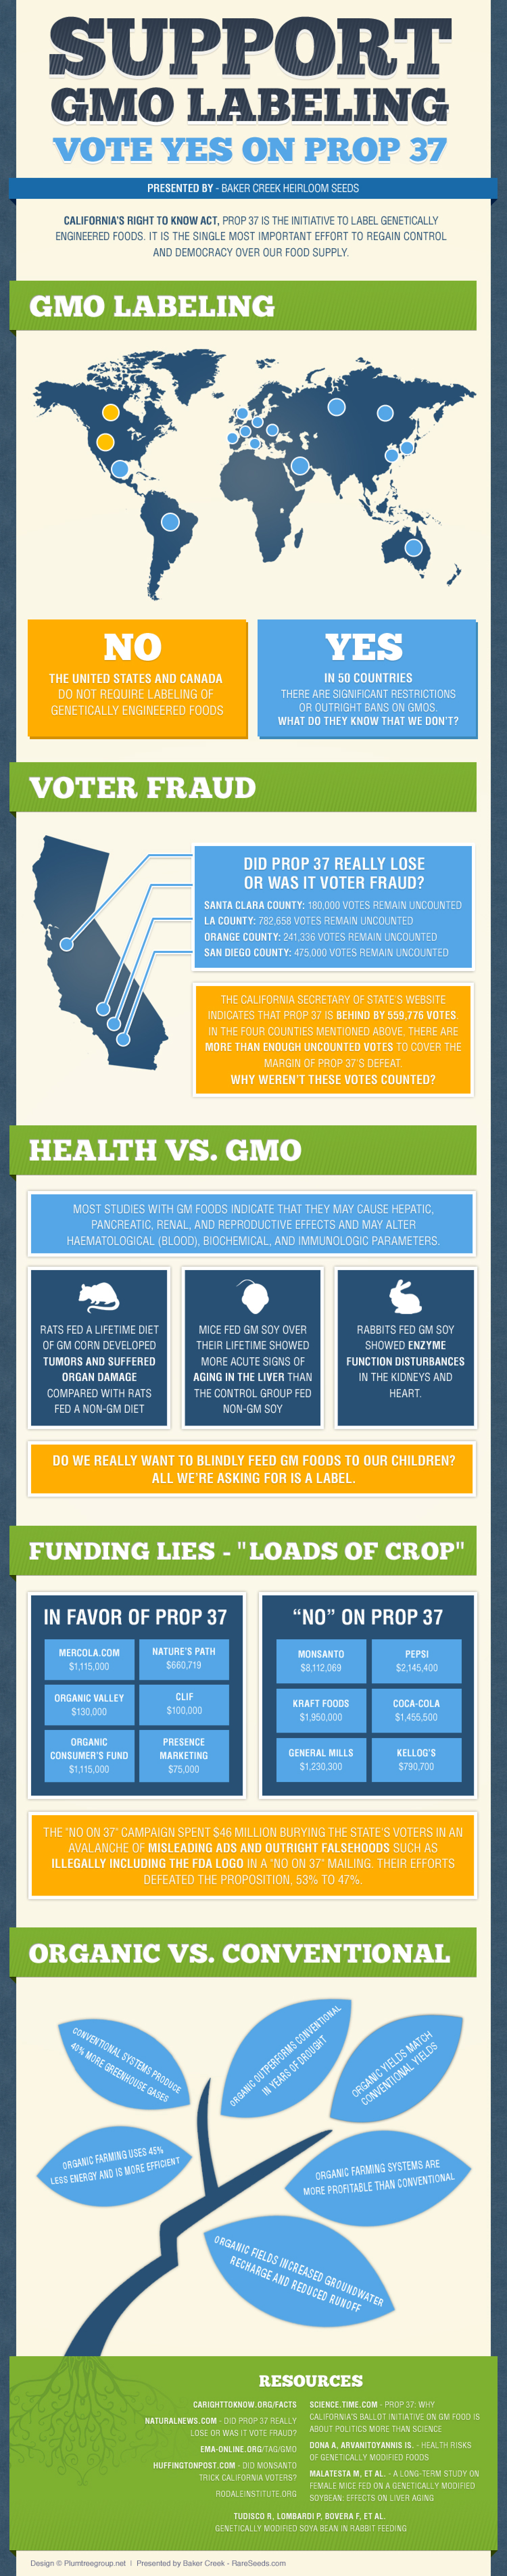 Support GMO Labeling  Infographic